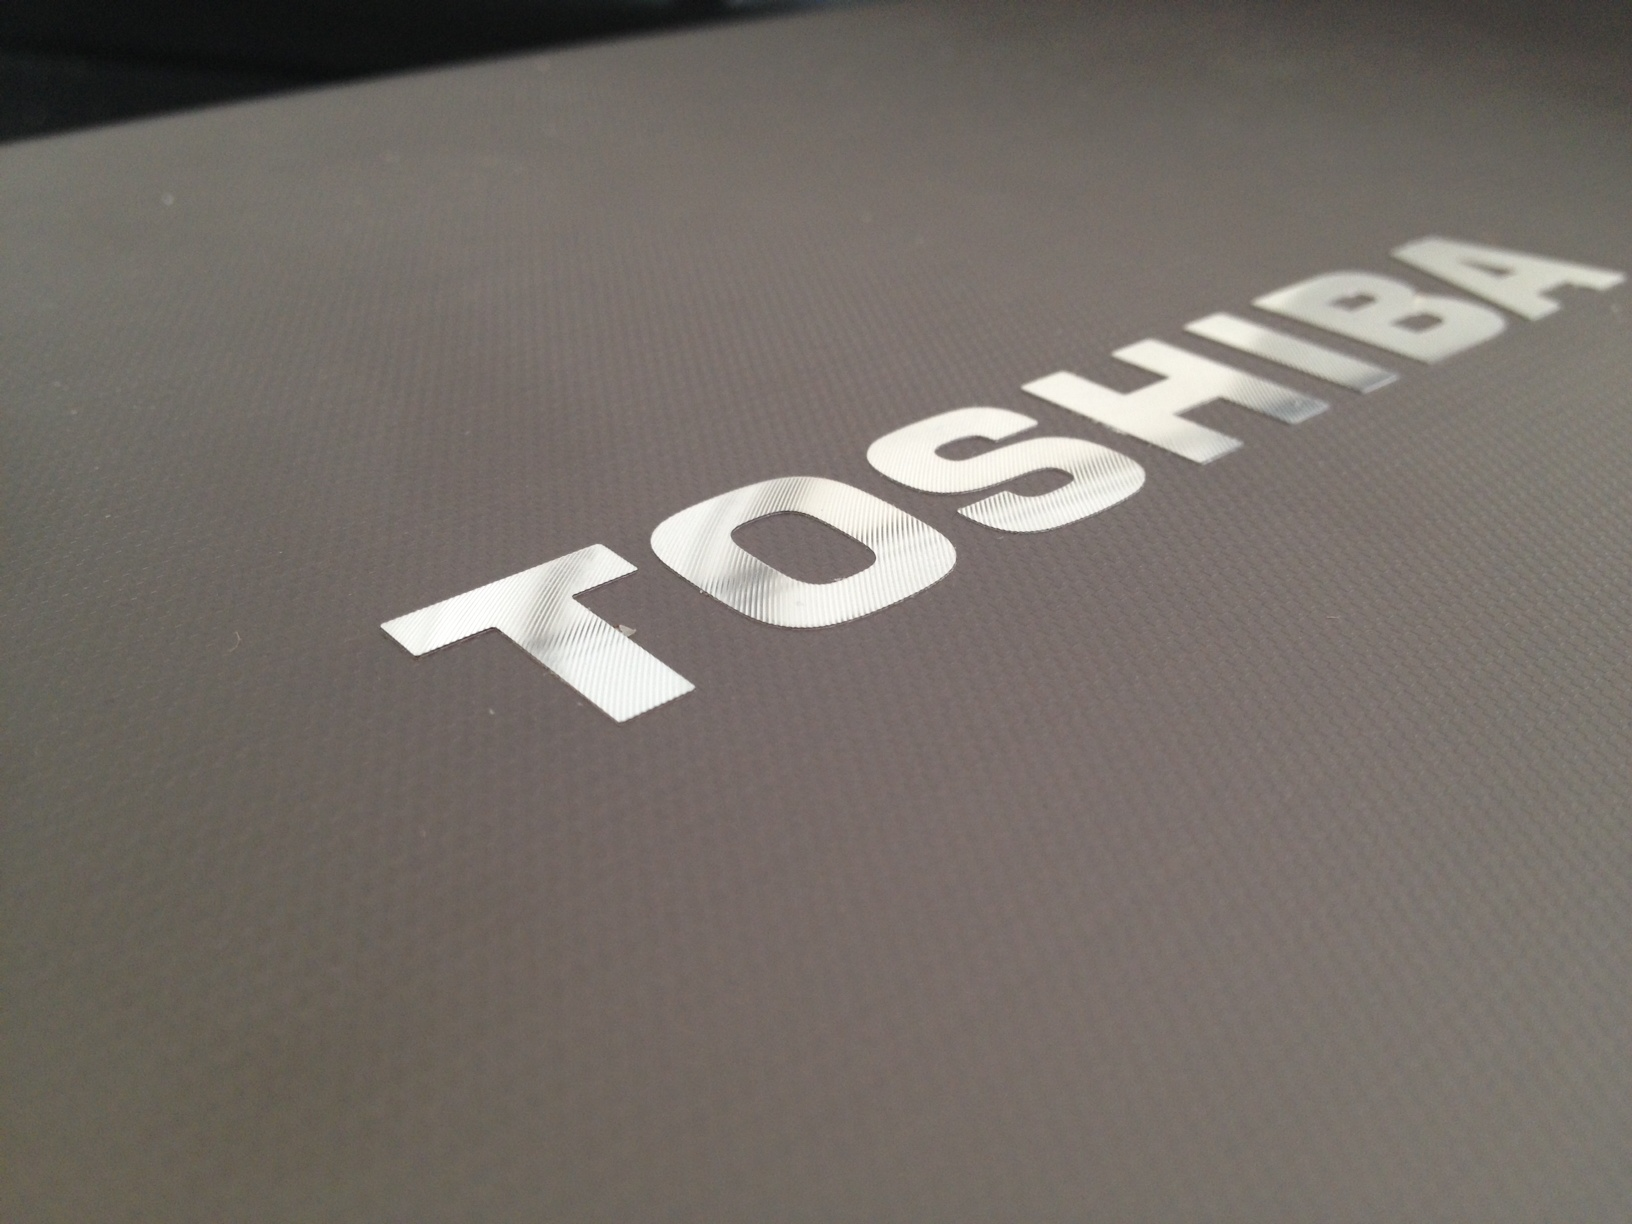 Toshiba P875 review – A workhorse of a laptop that might break your back but not your bank